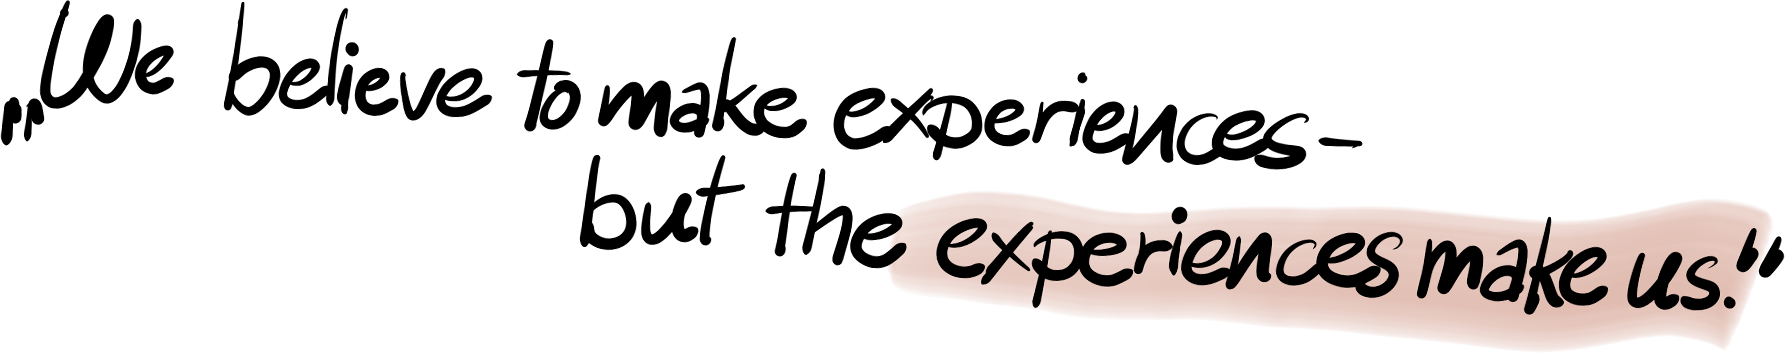 We believe to make experiences - but the experiences make us | e&Co. AG